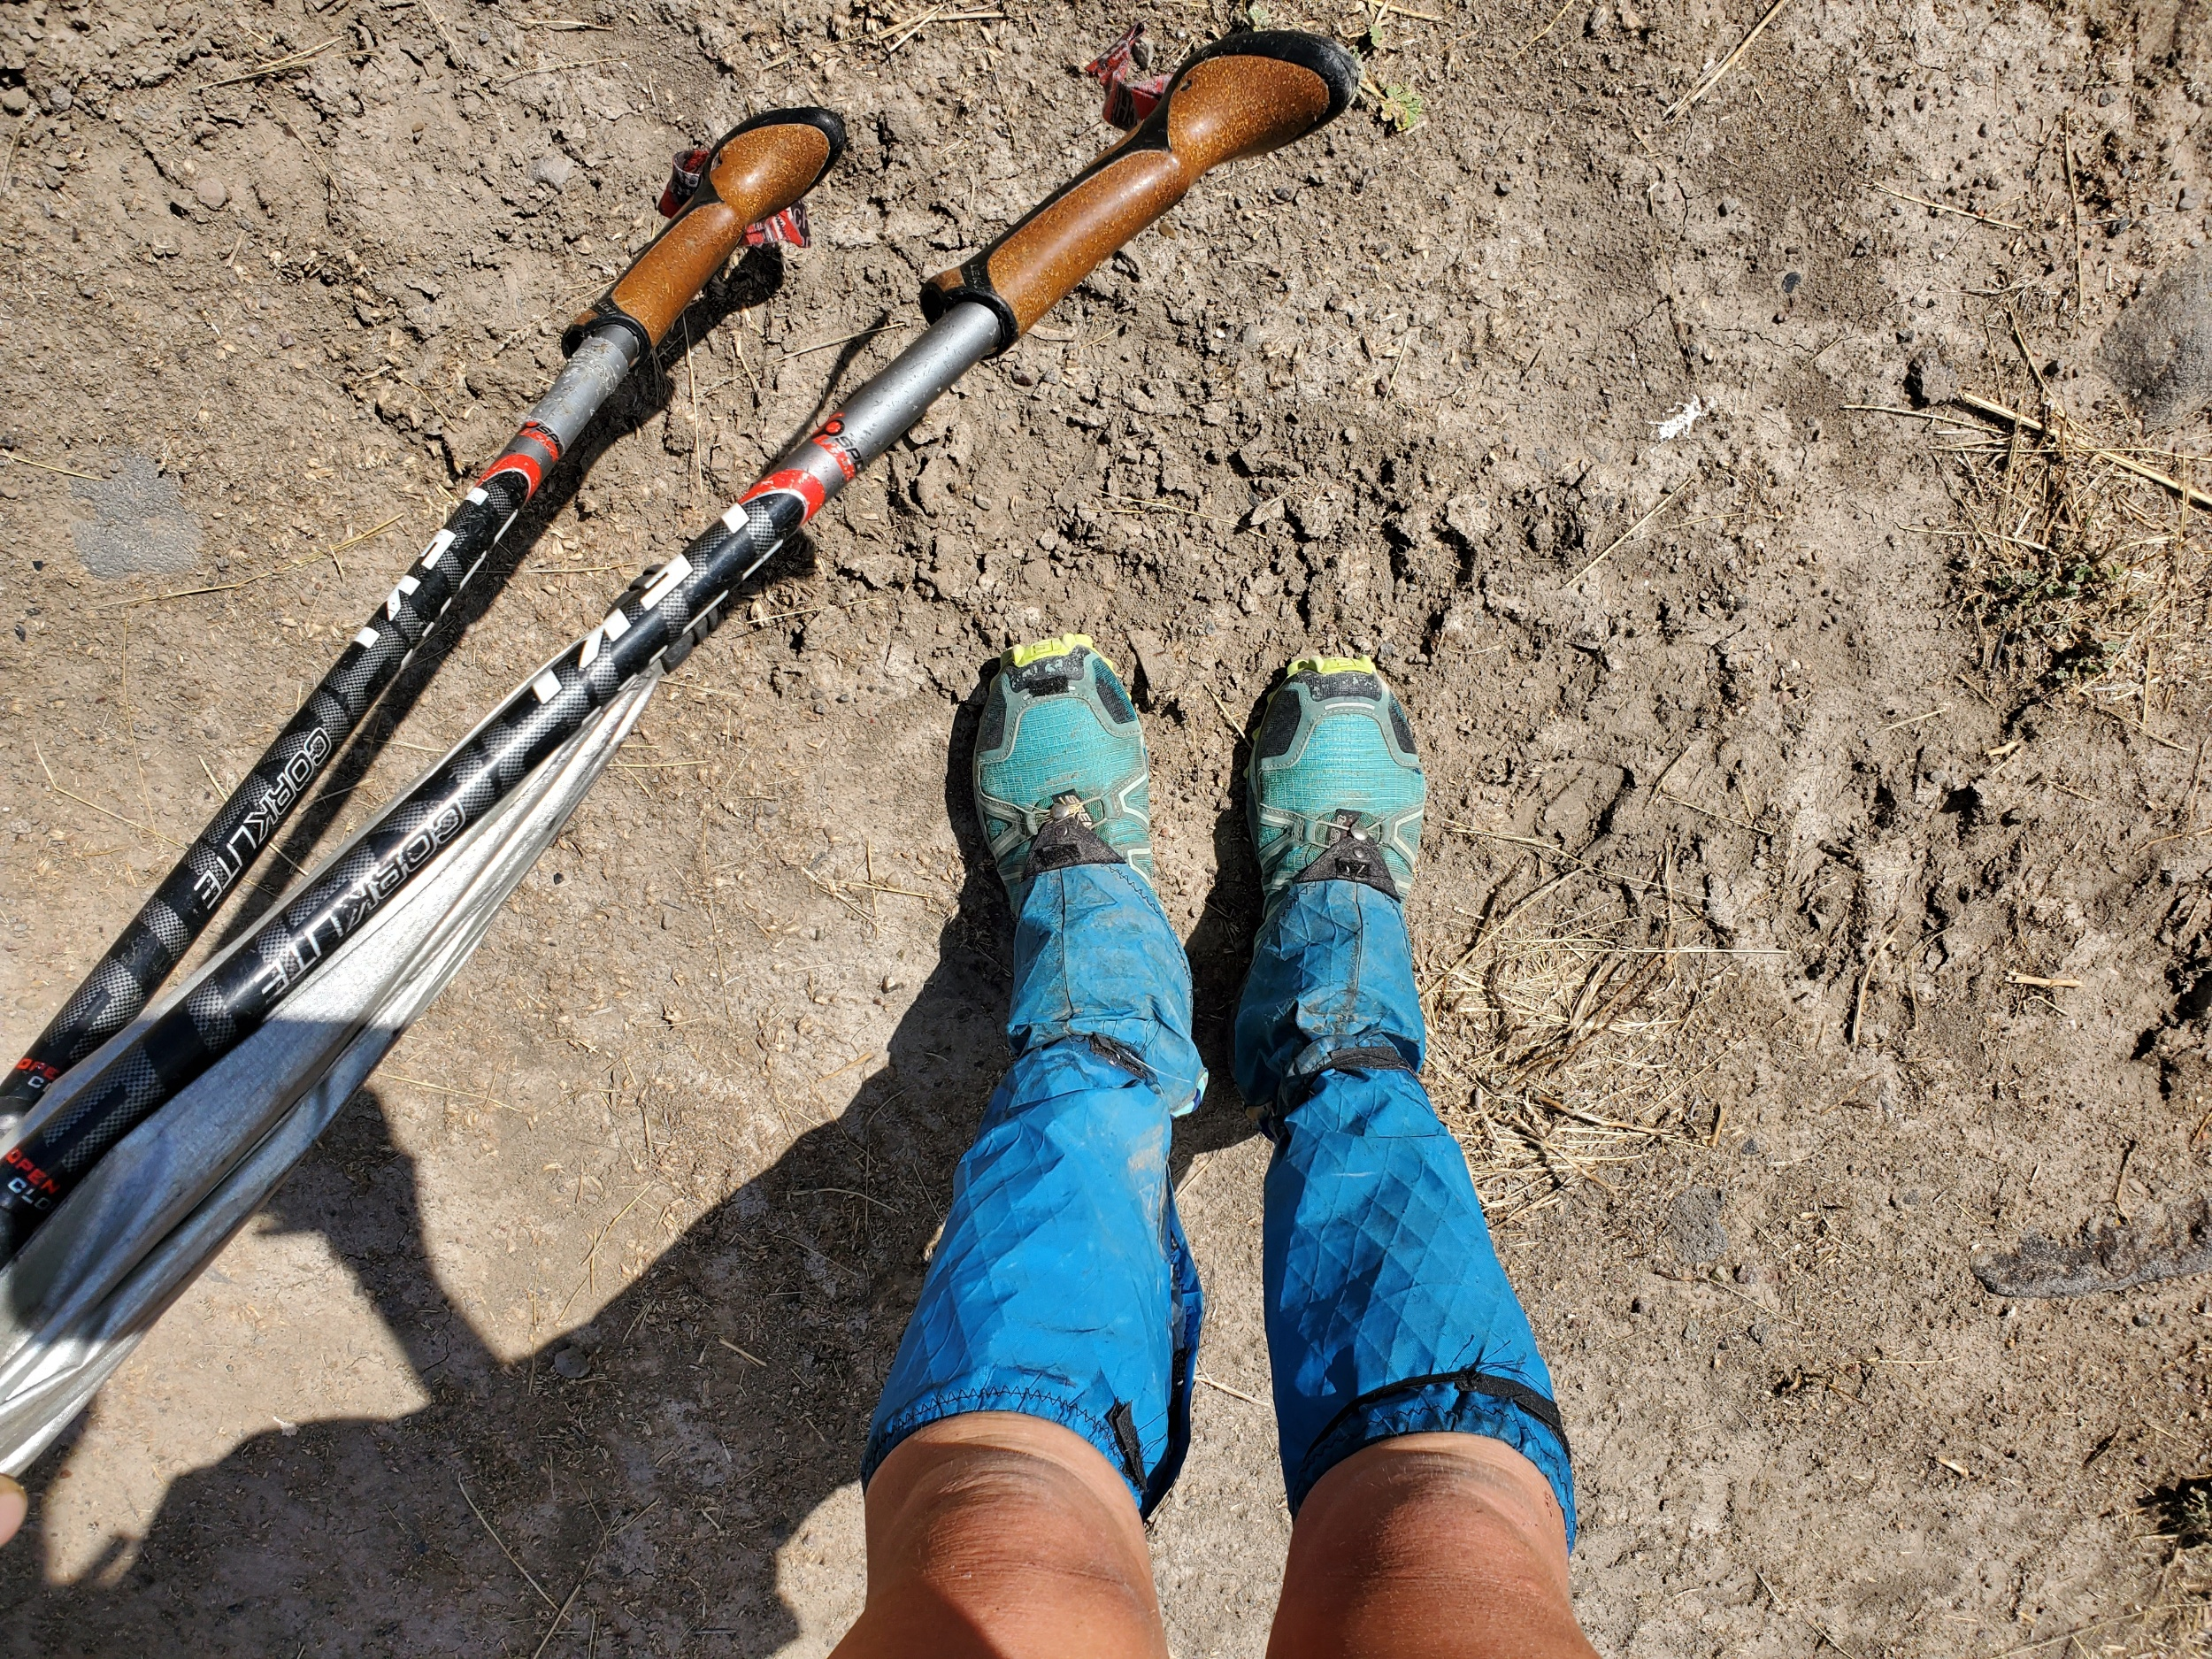 My custom made tall gaiters for the hike. I wanted a pair that were two parts, a short goatee for all condition hiking and a quickly removable top portion for the heavy bushwacking sections.